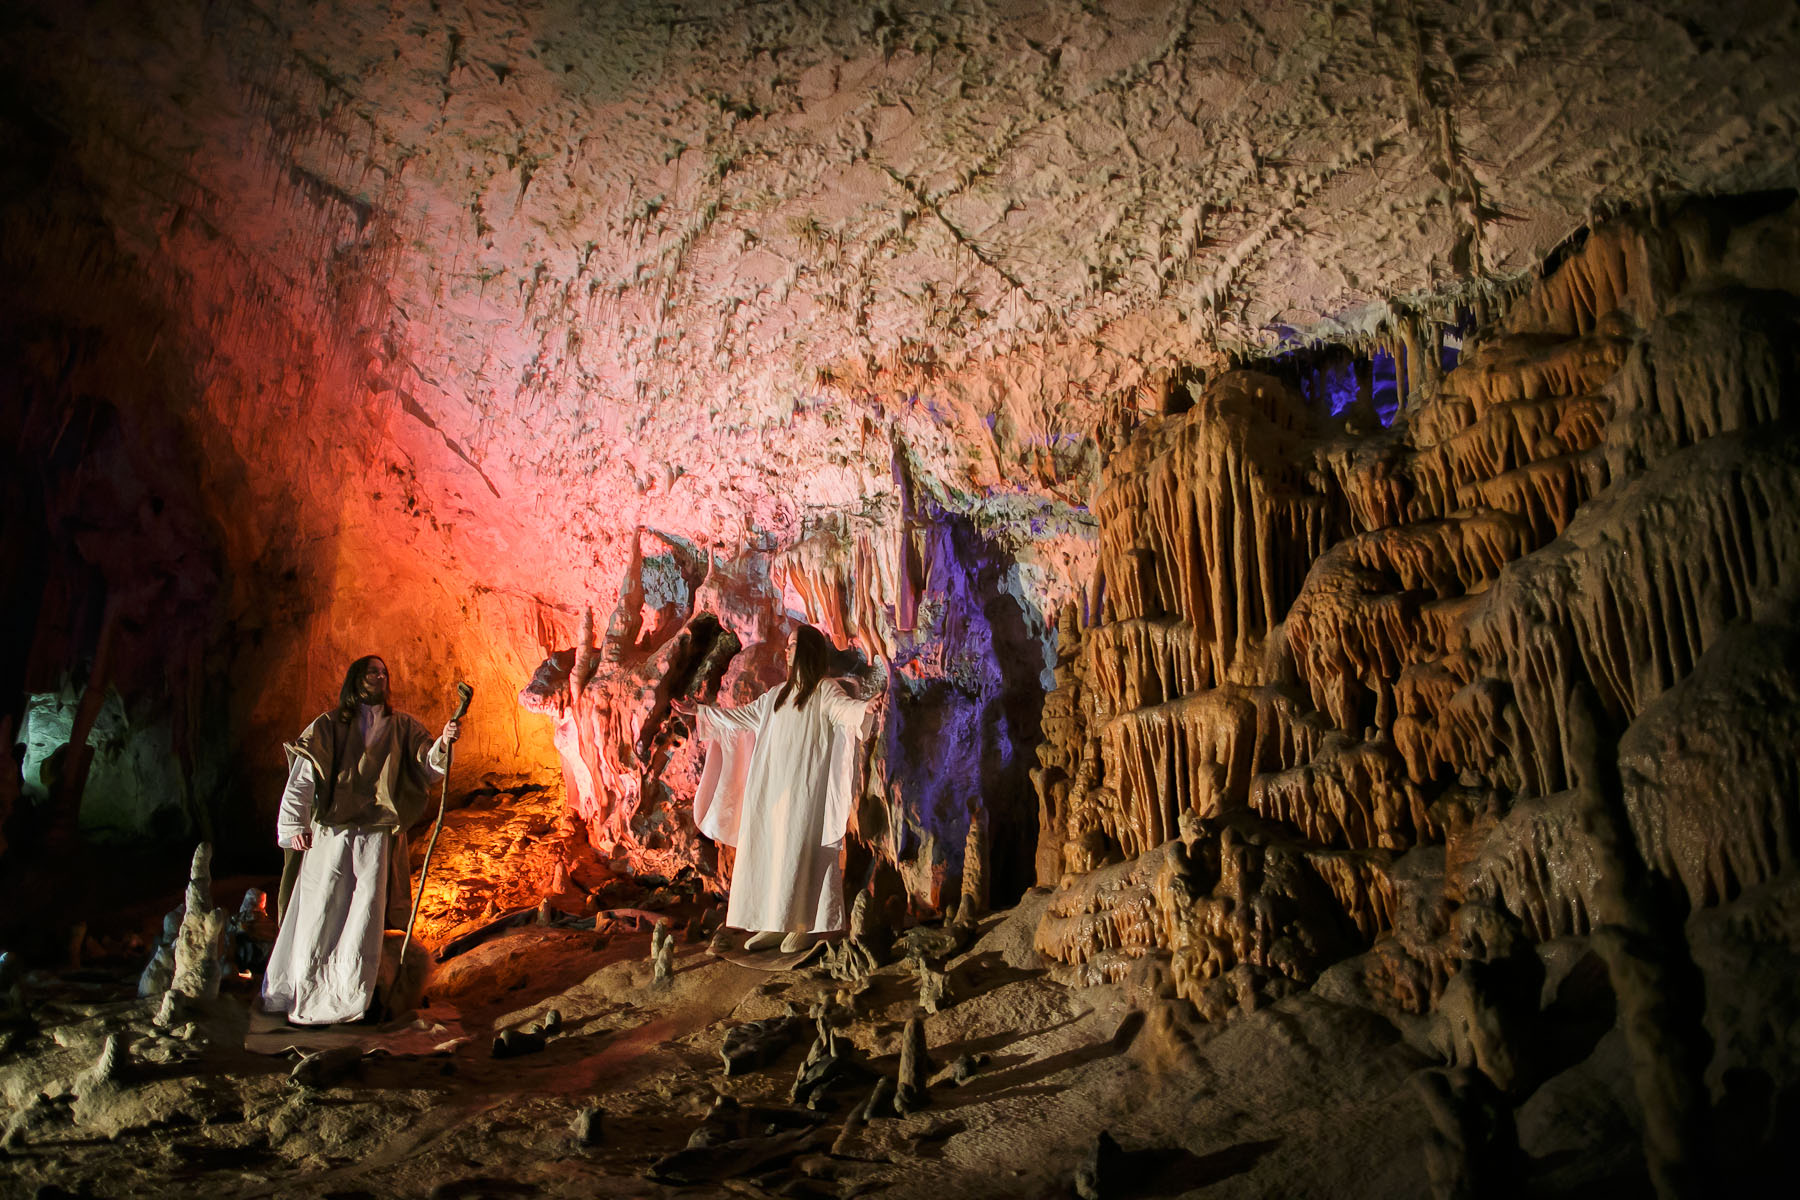 Actors perform in a biblical scene during the world's largest live Nativity scene in a cave, staged in the world-famous Postojna Cave in Slovenia, Dec. 25, 2015.